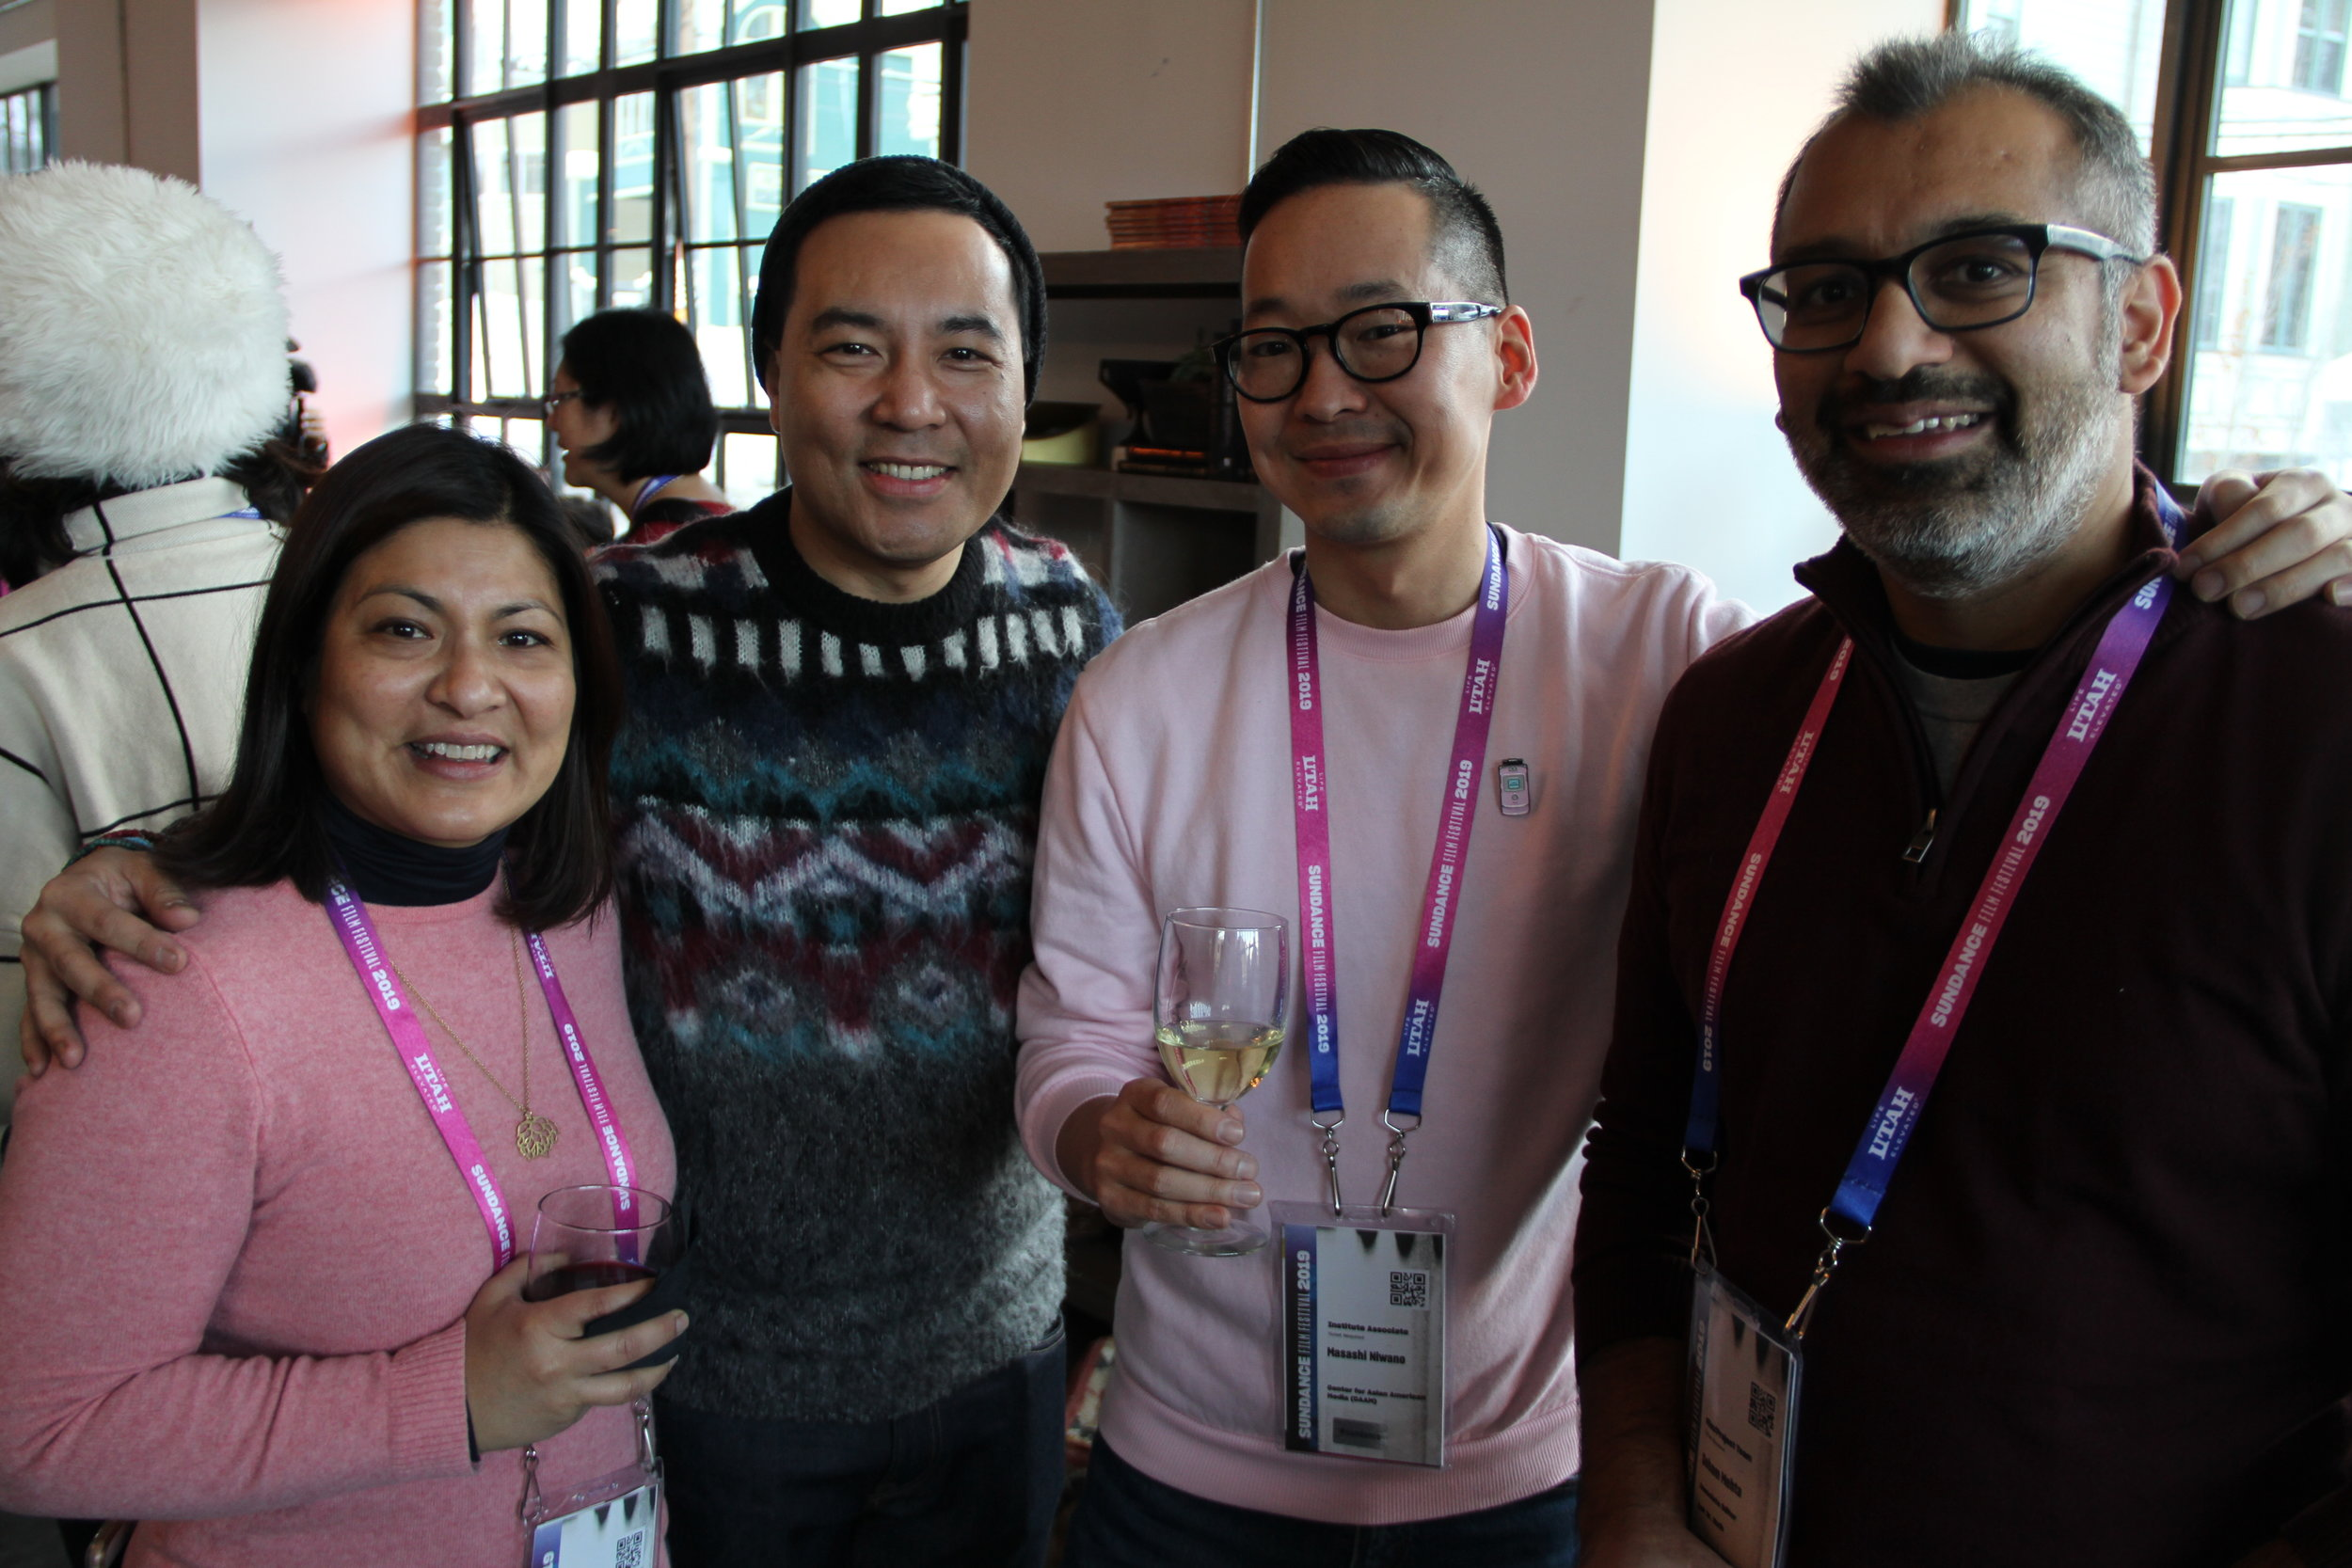 CAAMsters Sapana Sakya and Masashi Niwano greet John D. Lee and filmmaker Soham Mehta at the Asian Pacific Filmmakers Experience in Park City's RYOT & VICE Studios meet-up. (Photo: Abraham Ferrer/Visual Communications Photographic Archive)